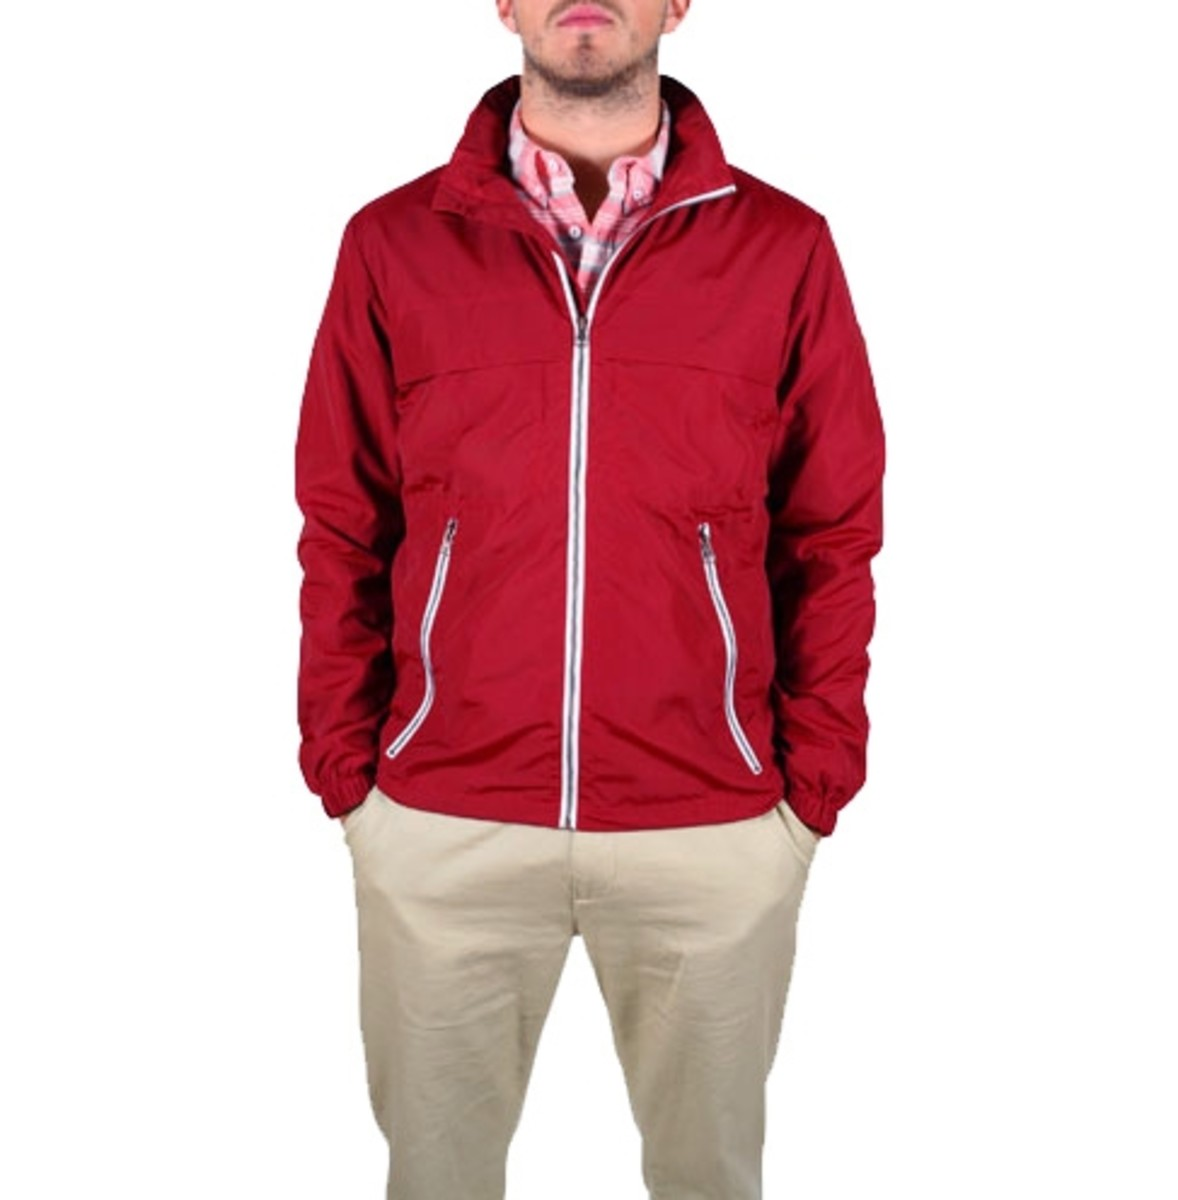 Penfield SS2011 Jackets 38